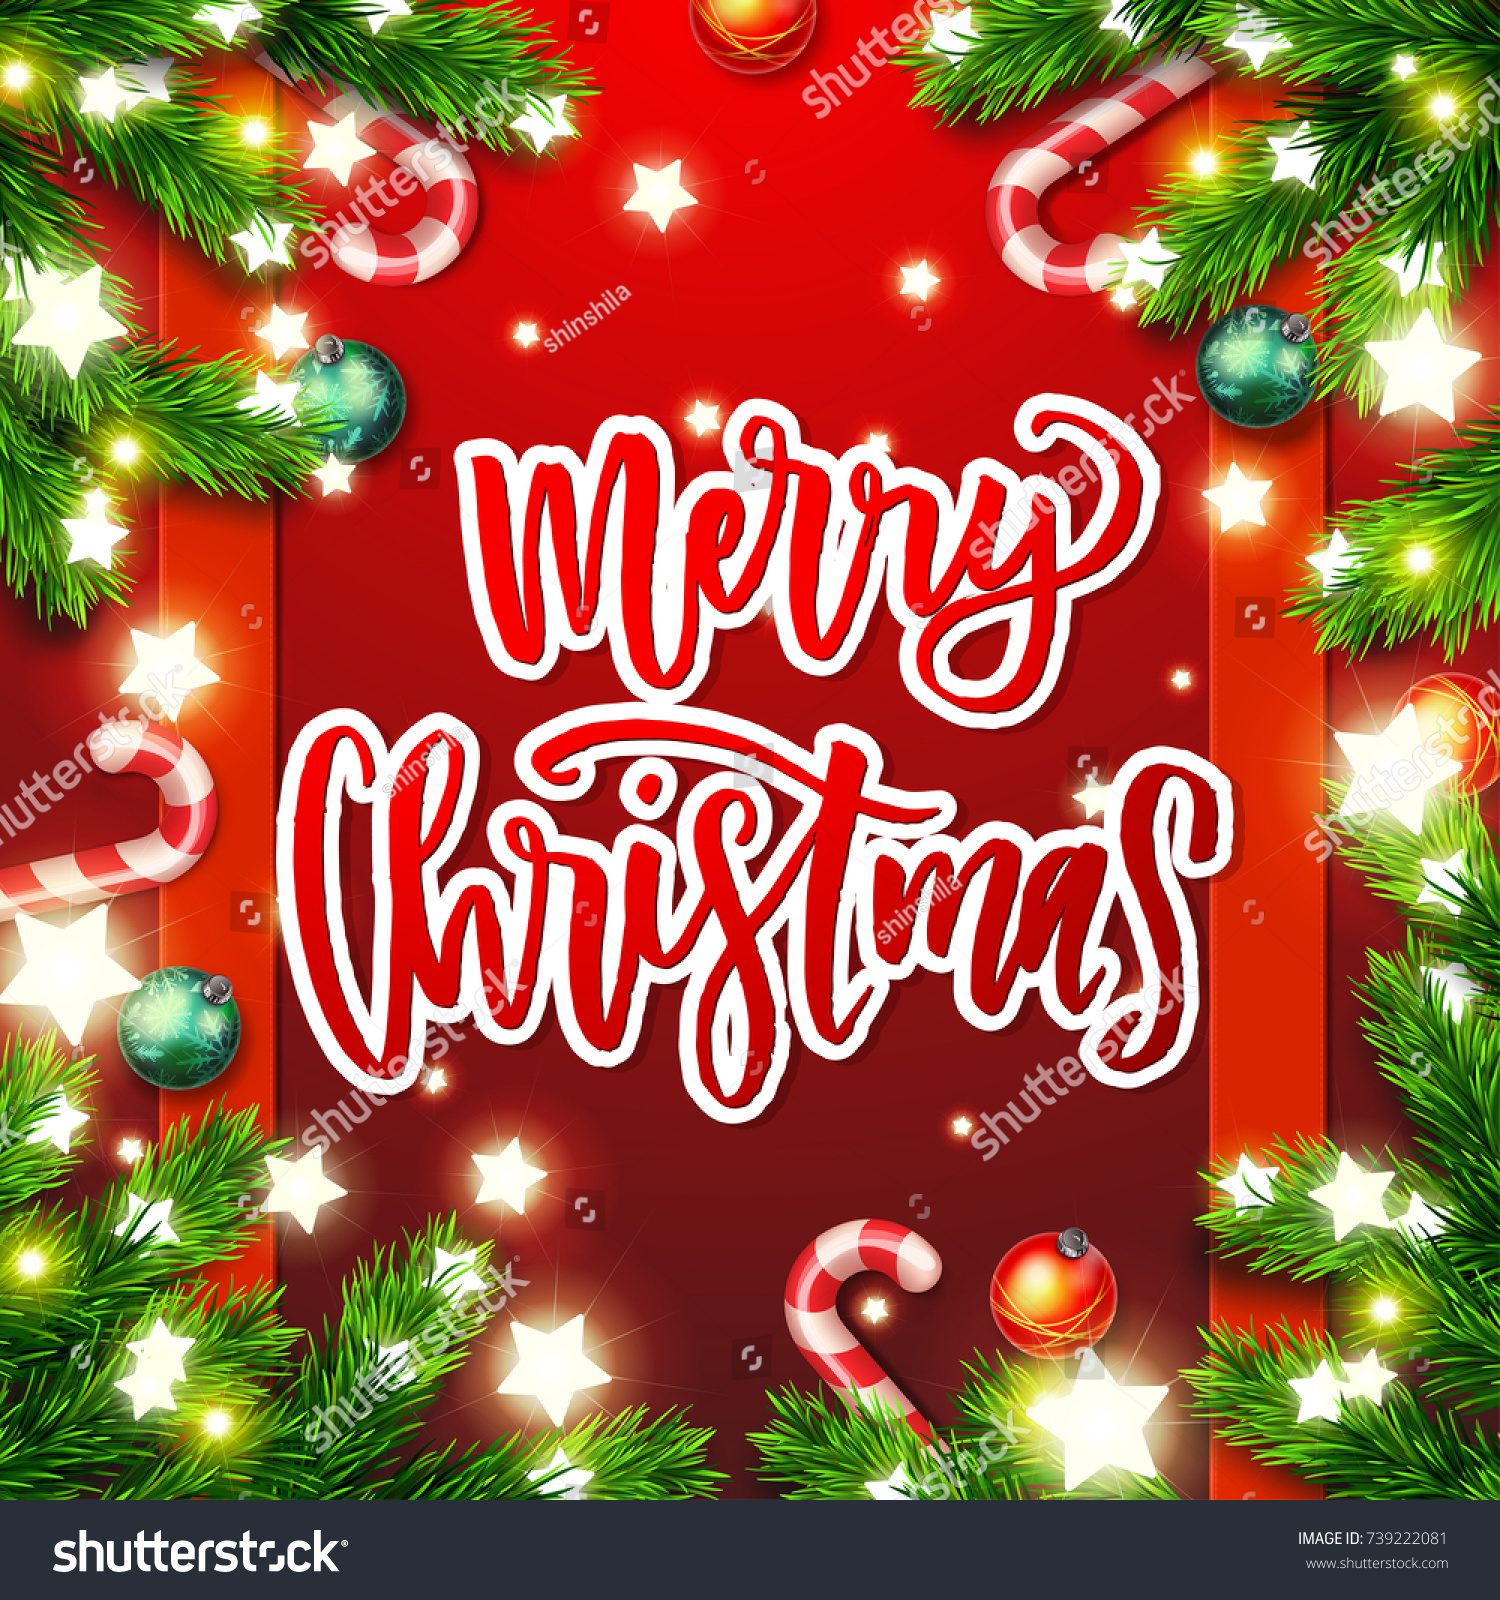 Merry christmas greeting card happy new stock vector 739222081 merry christmas greeting card happy new year xmas vector background hand drawn calligraphy kristyandbryce Image collections